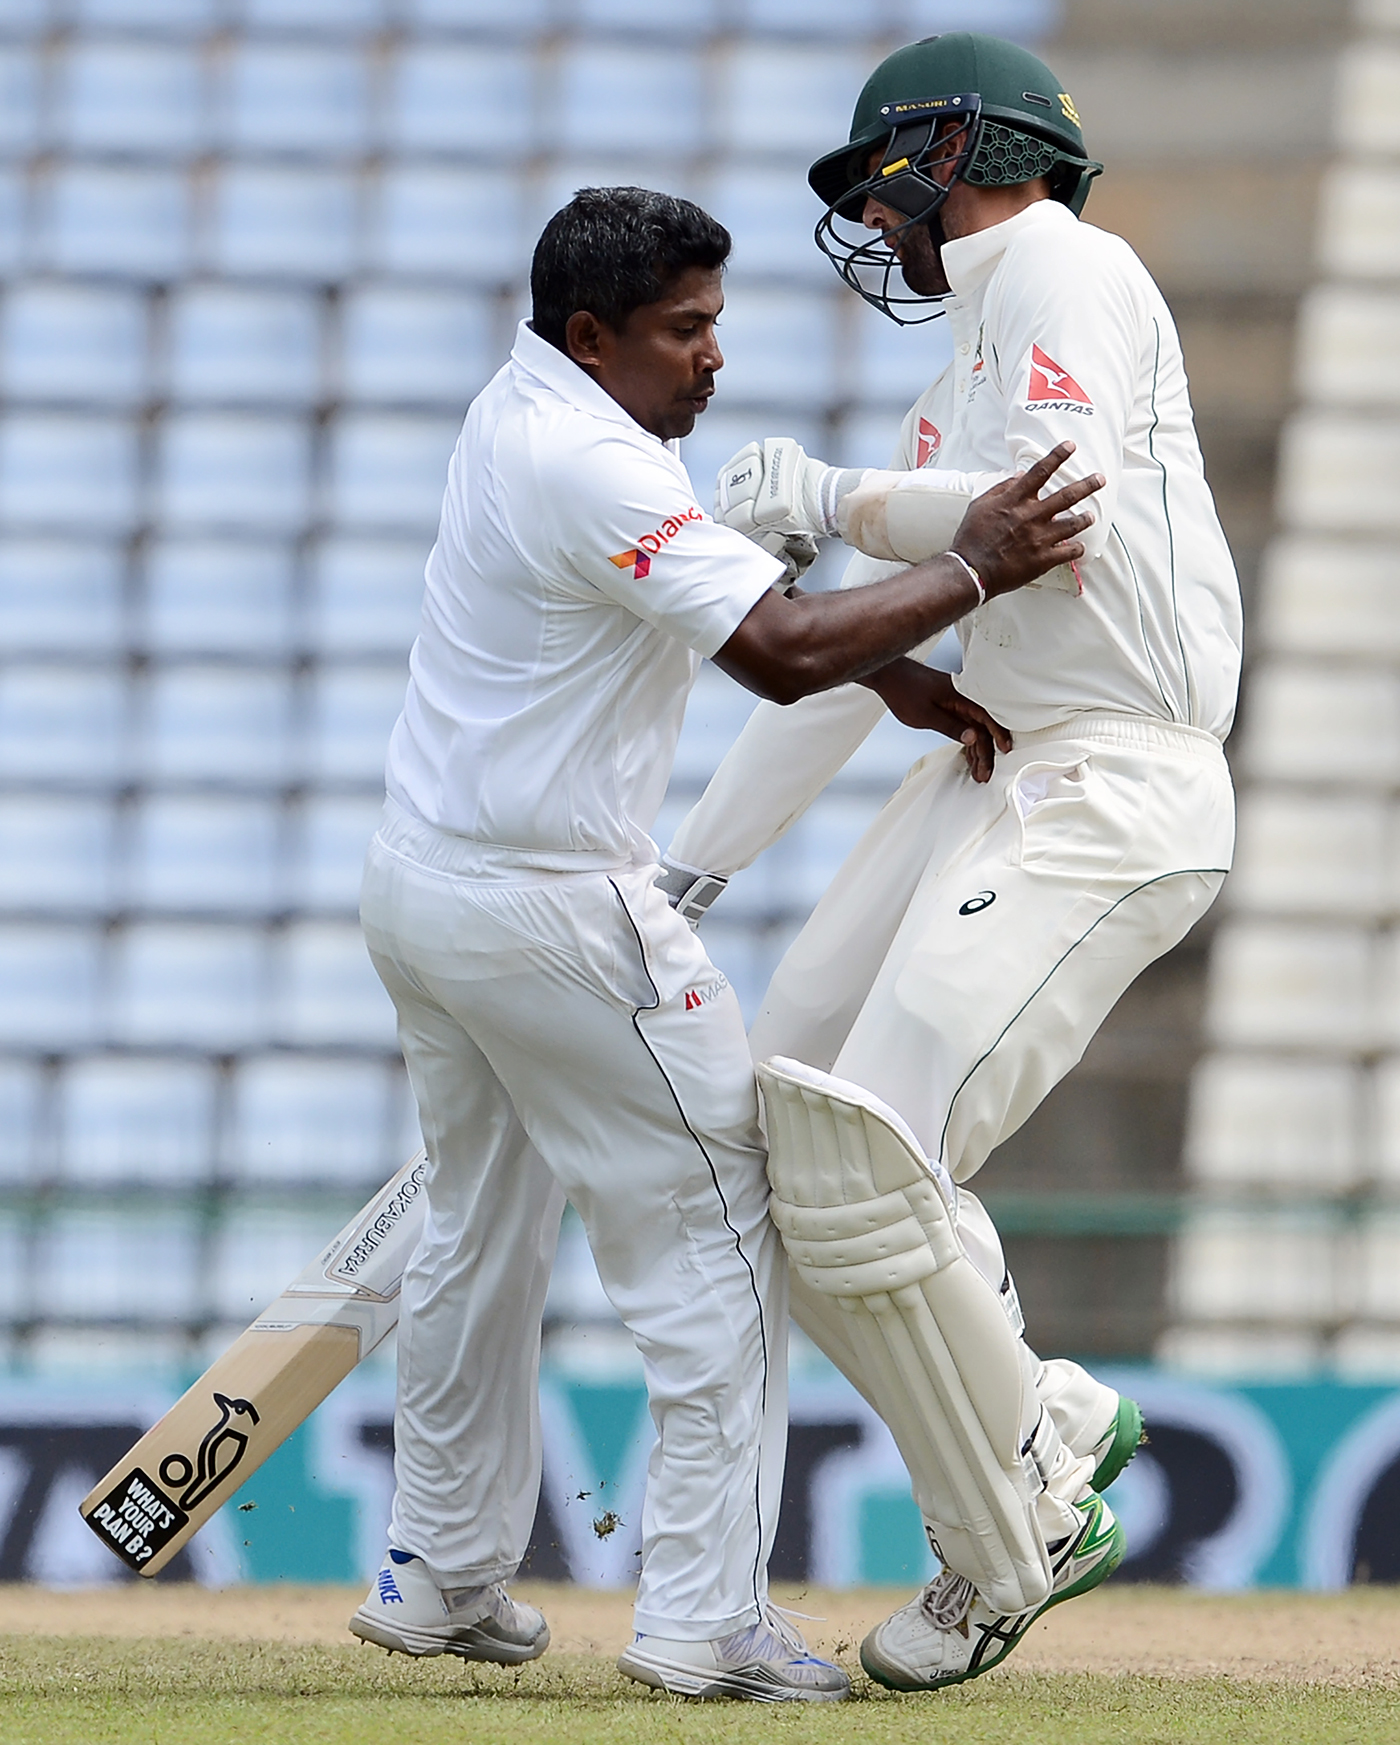 A collision of styles: get Rangana Herath's nagging accuracy without losing your